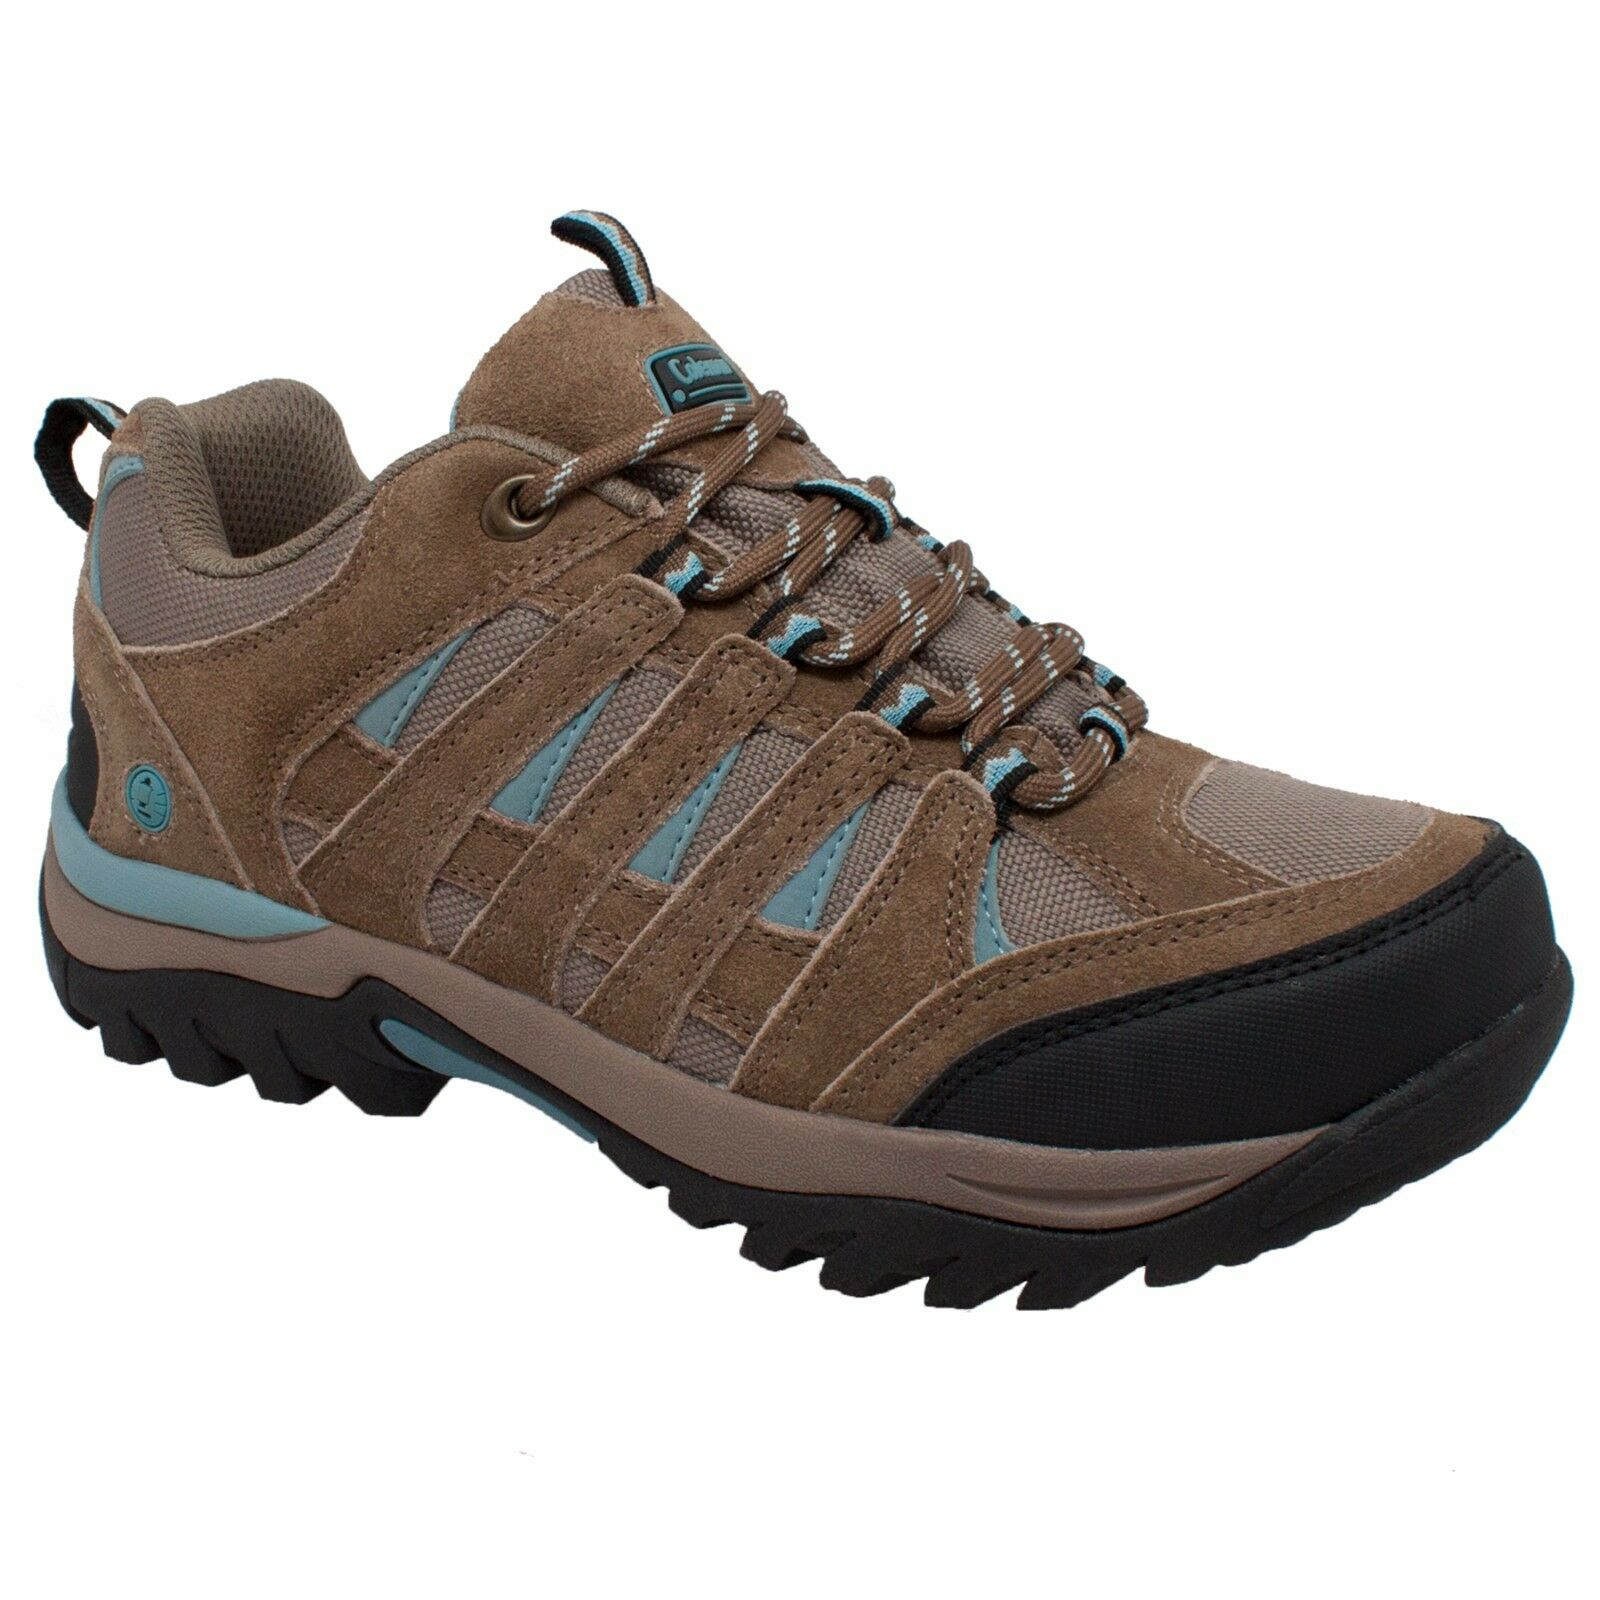 Keystone Braun, Coleman Woman Upper, Hiker Suede Leder Upper, Woman Soft Toe Schuhe 42abc6